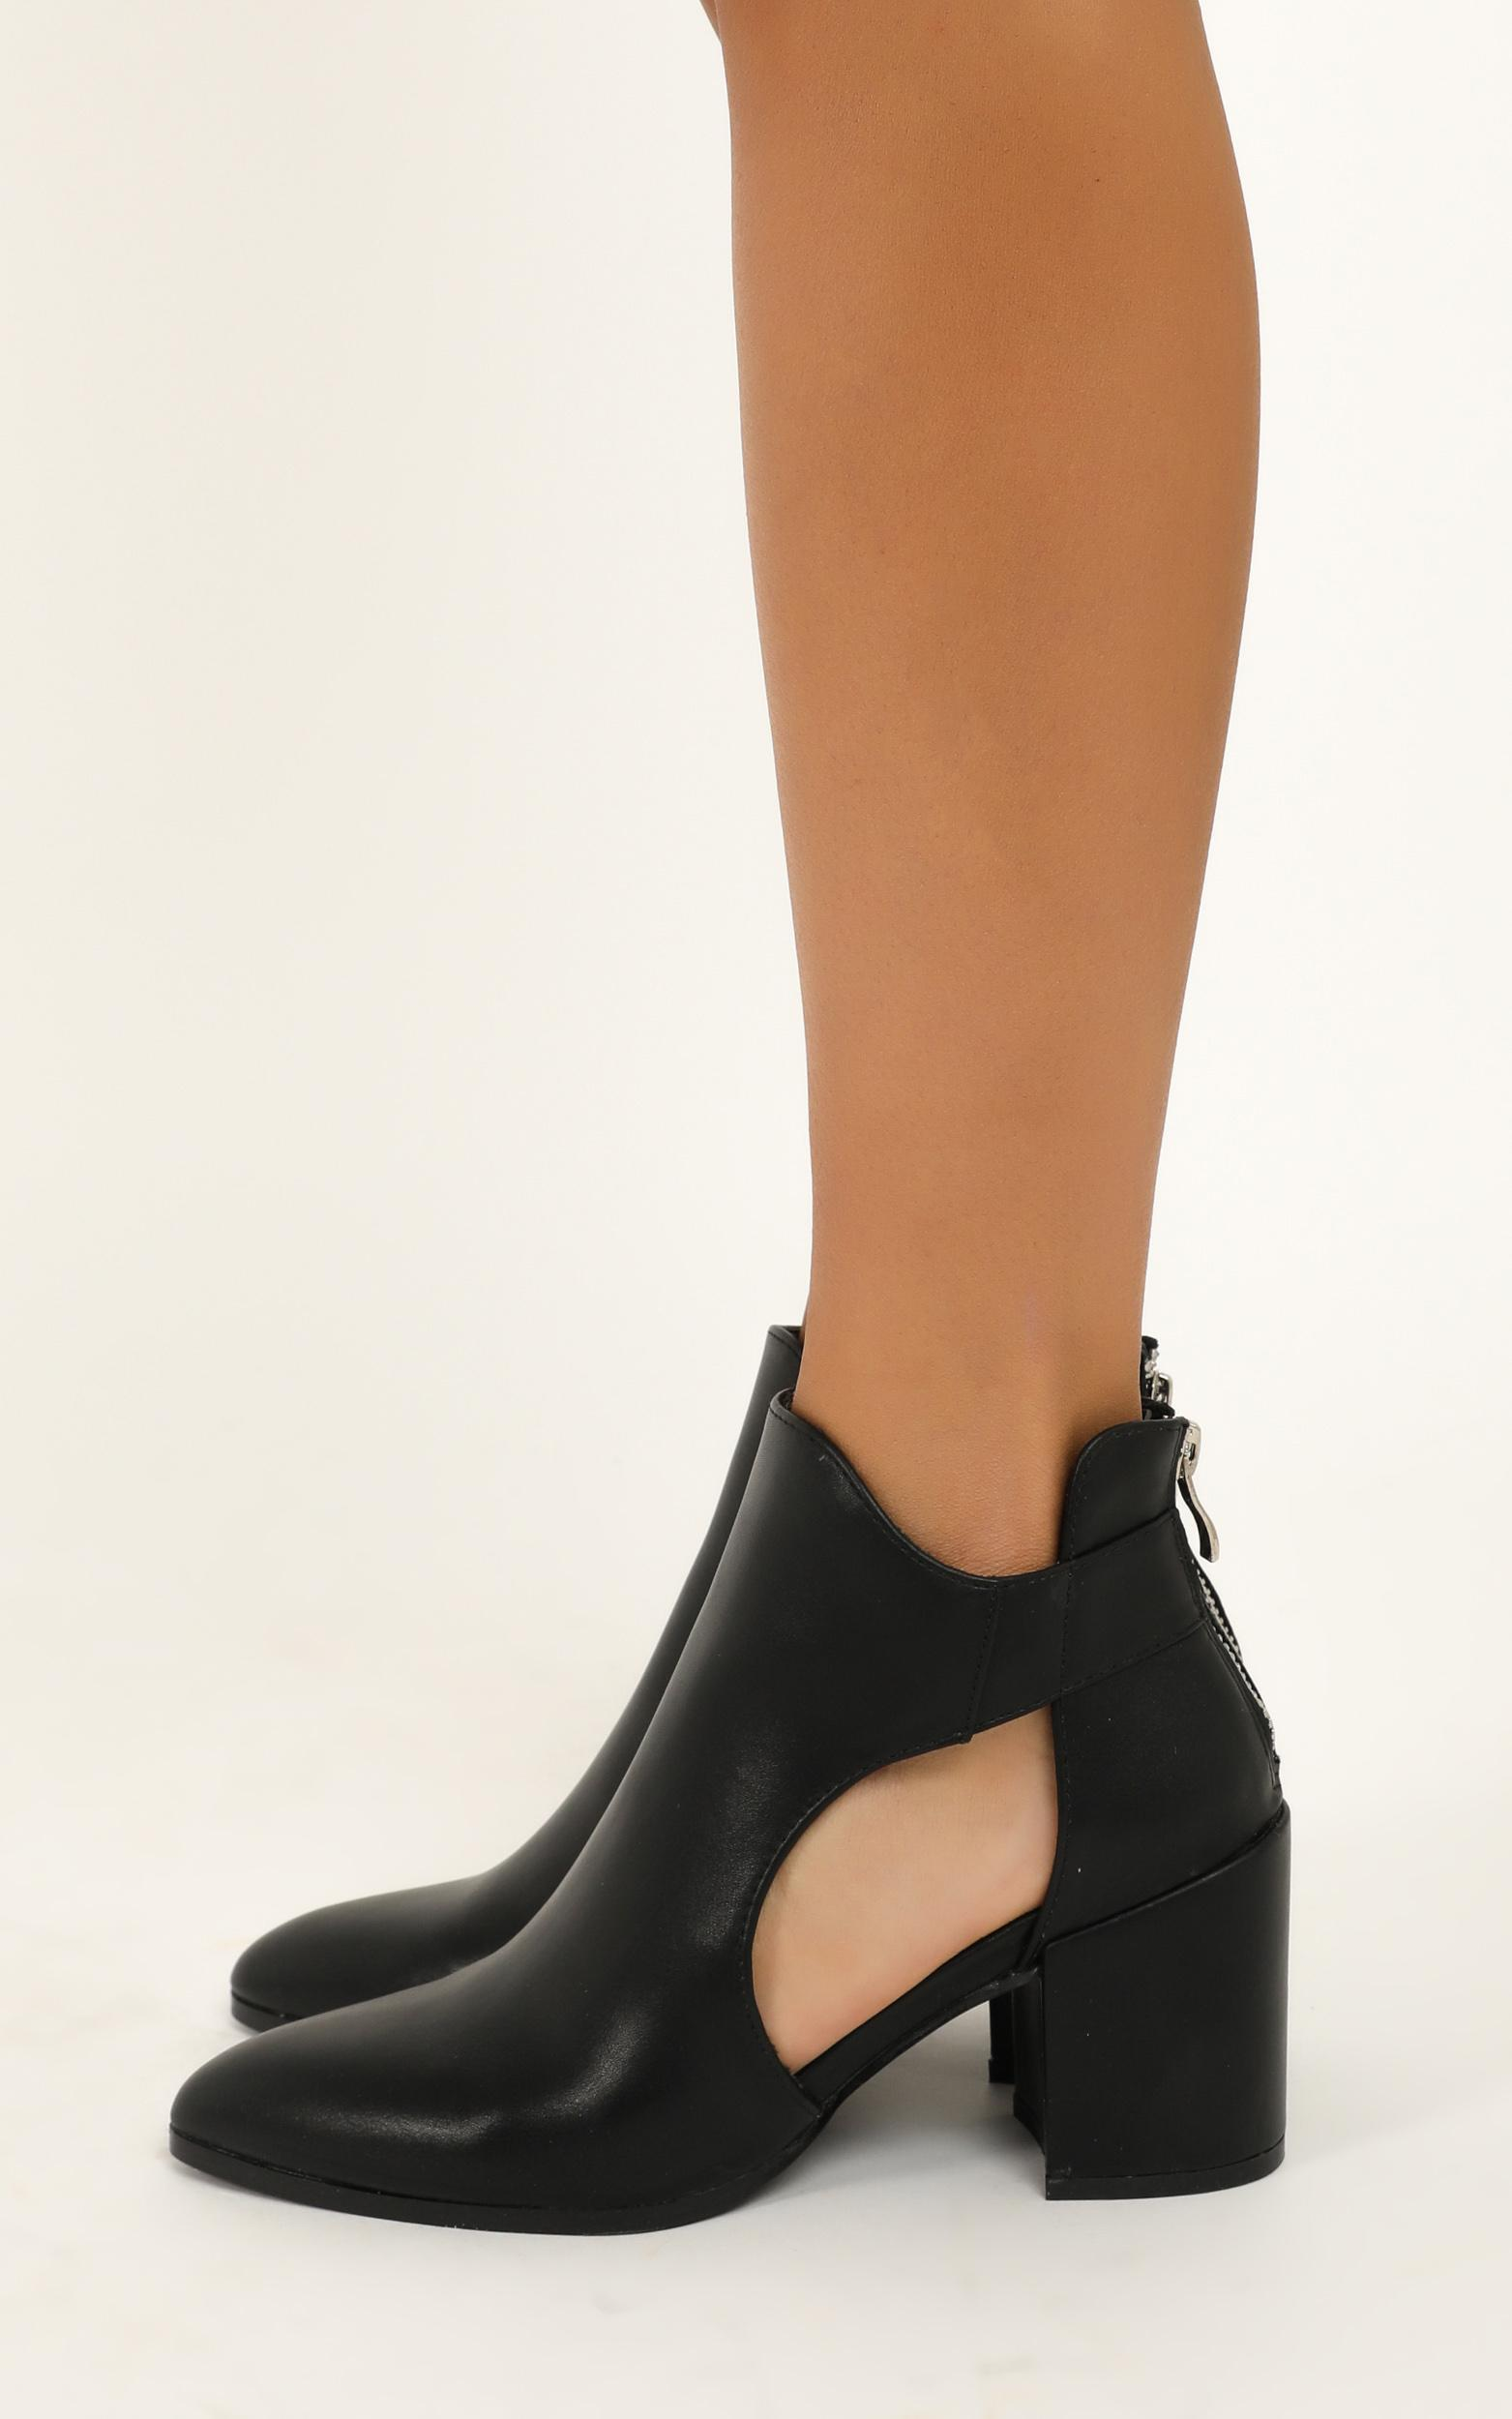 Therapy - Maya boots in black smooth - 10, Black, hi-res image number null